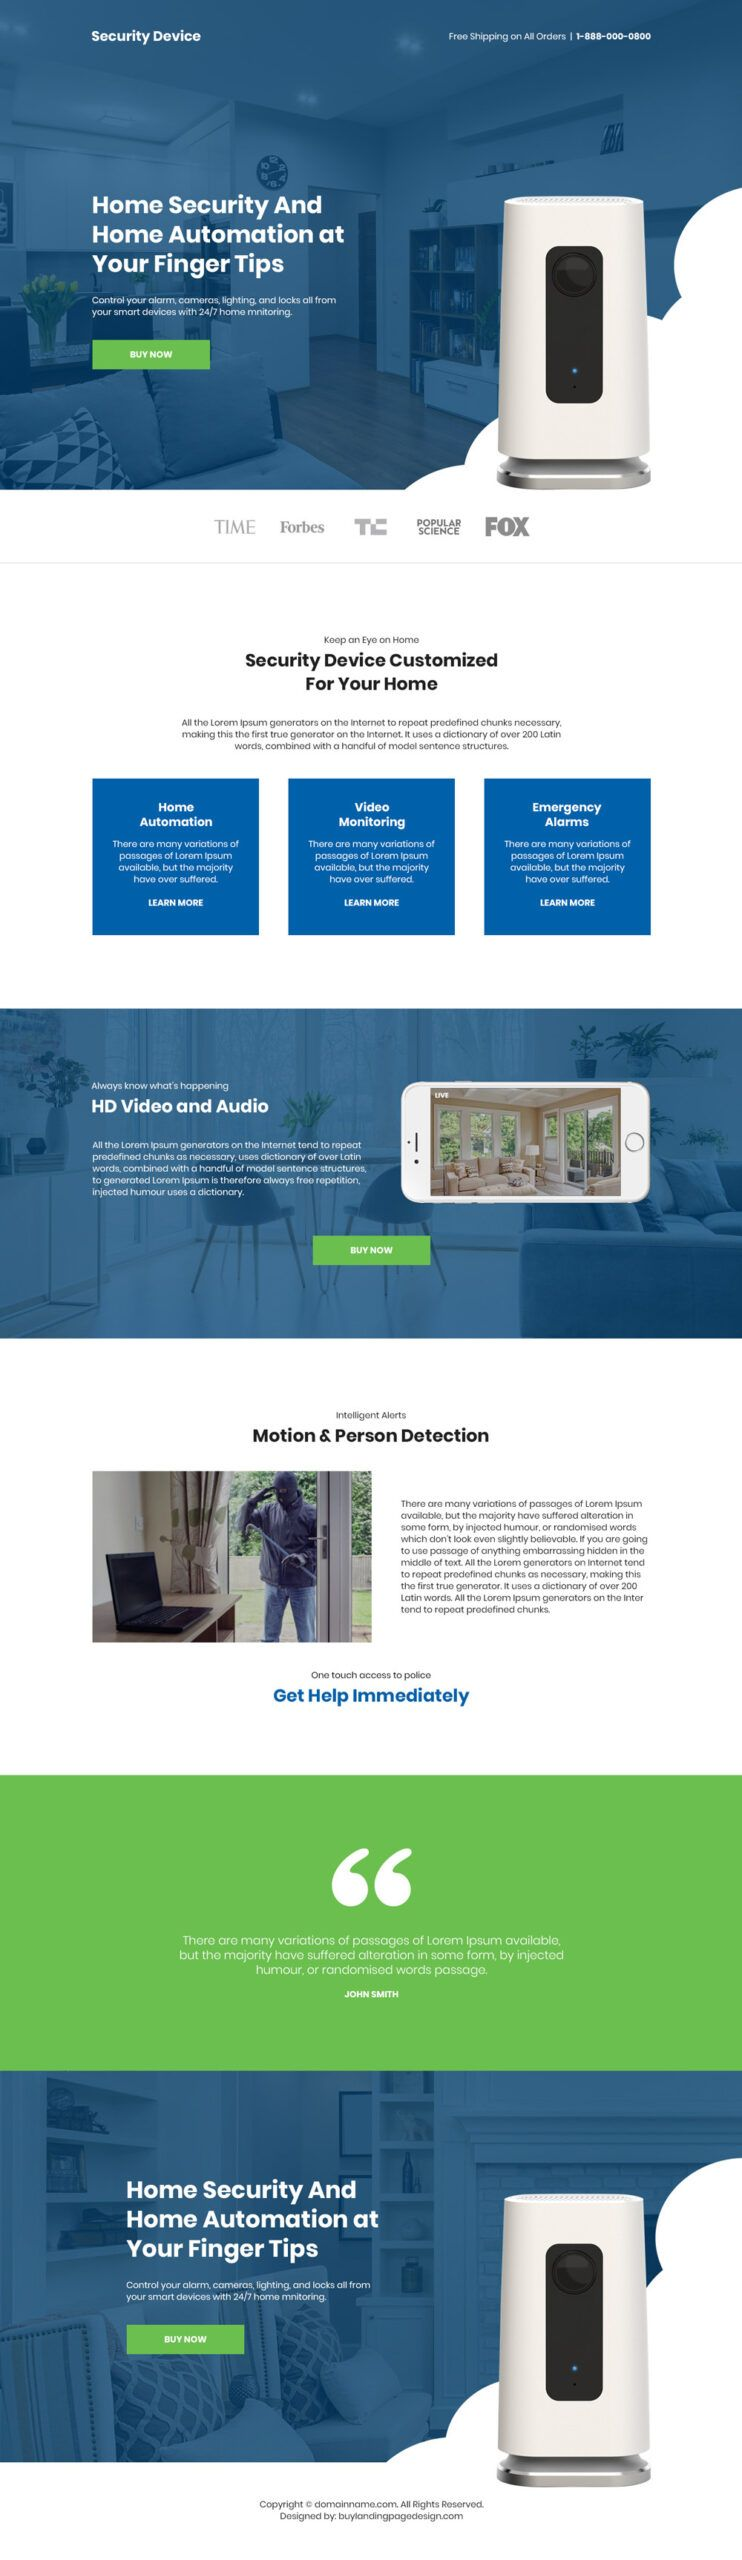 Home Security And Automation Device Landing Page In 2021 Home Security Home Security Devices Security Device